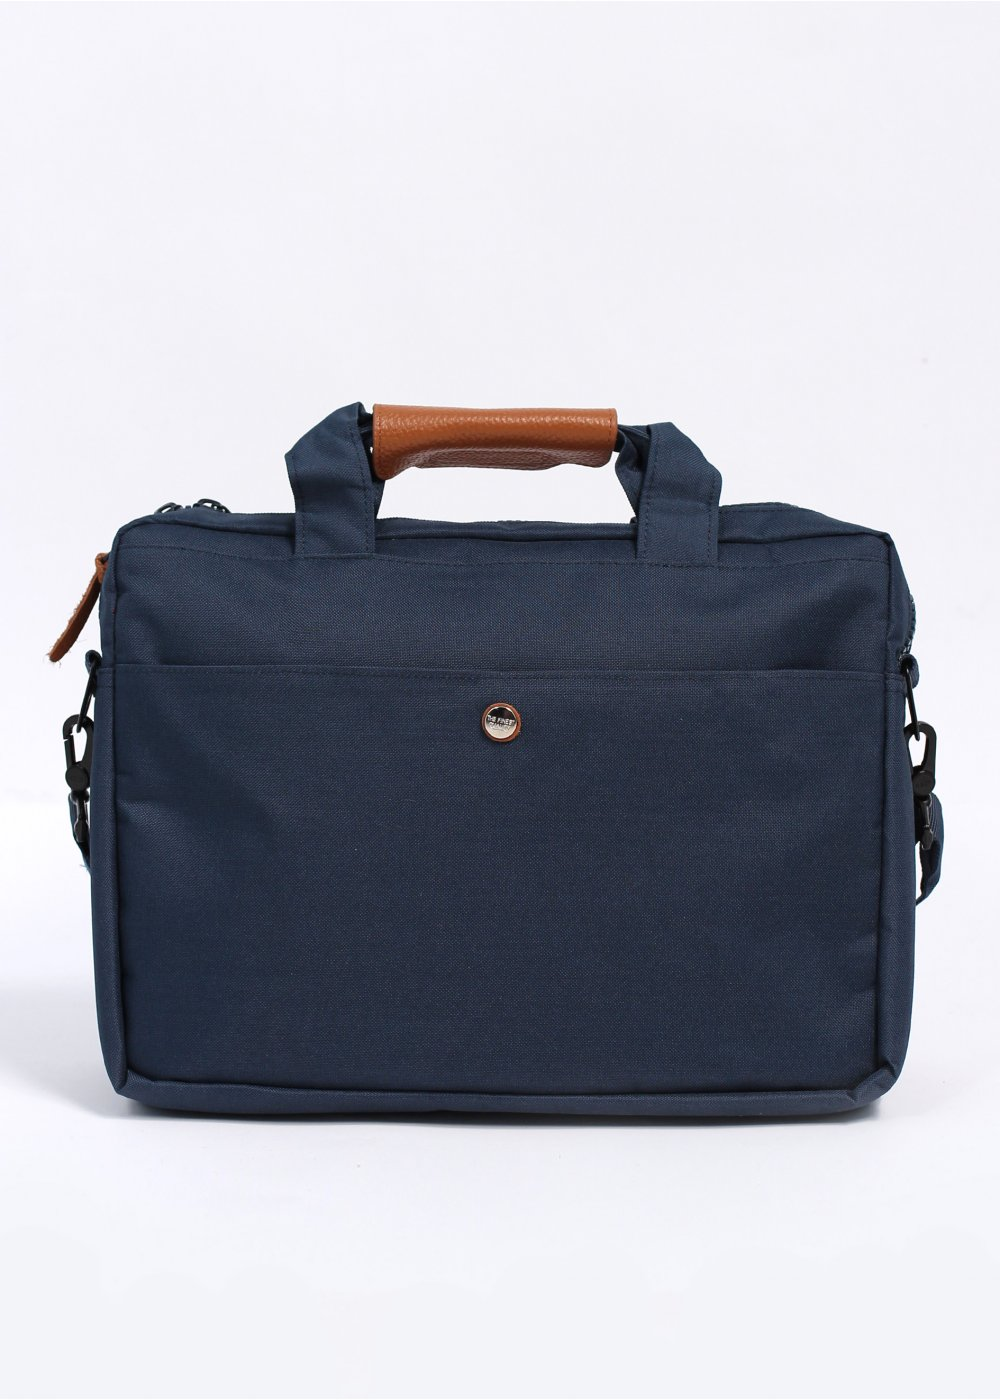 Find great deals on eBay for clarks leather bags. Shop with confidence.